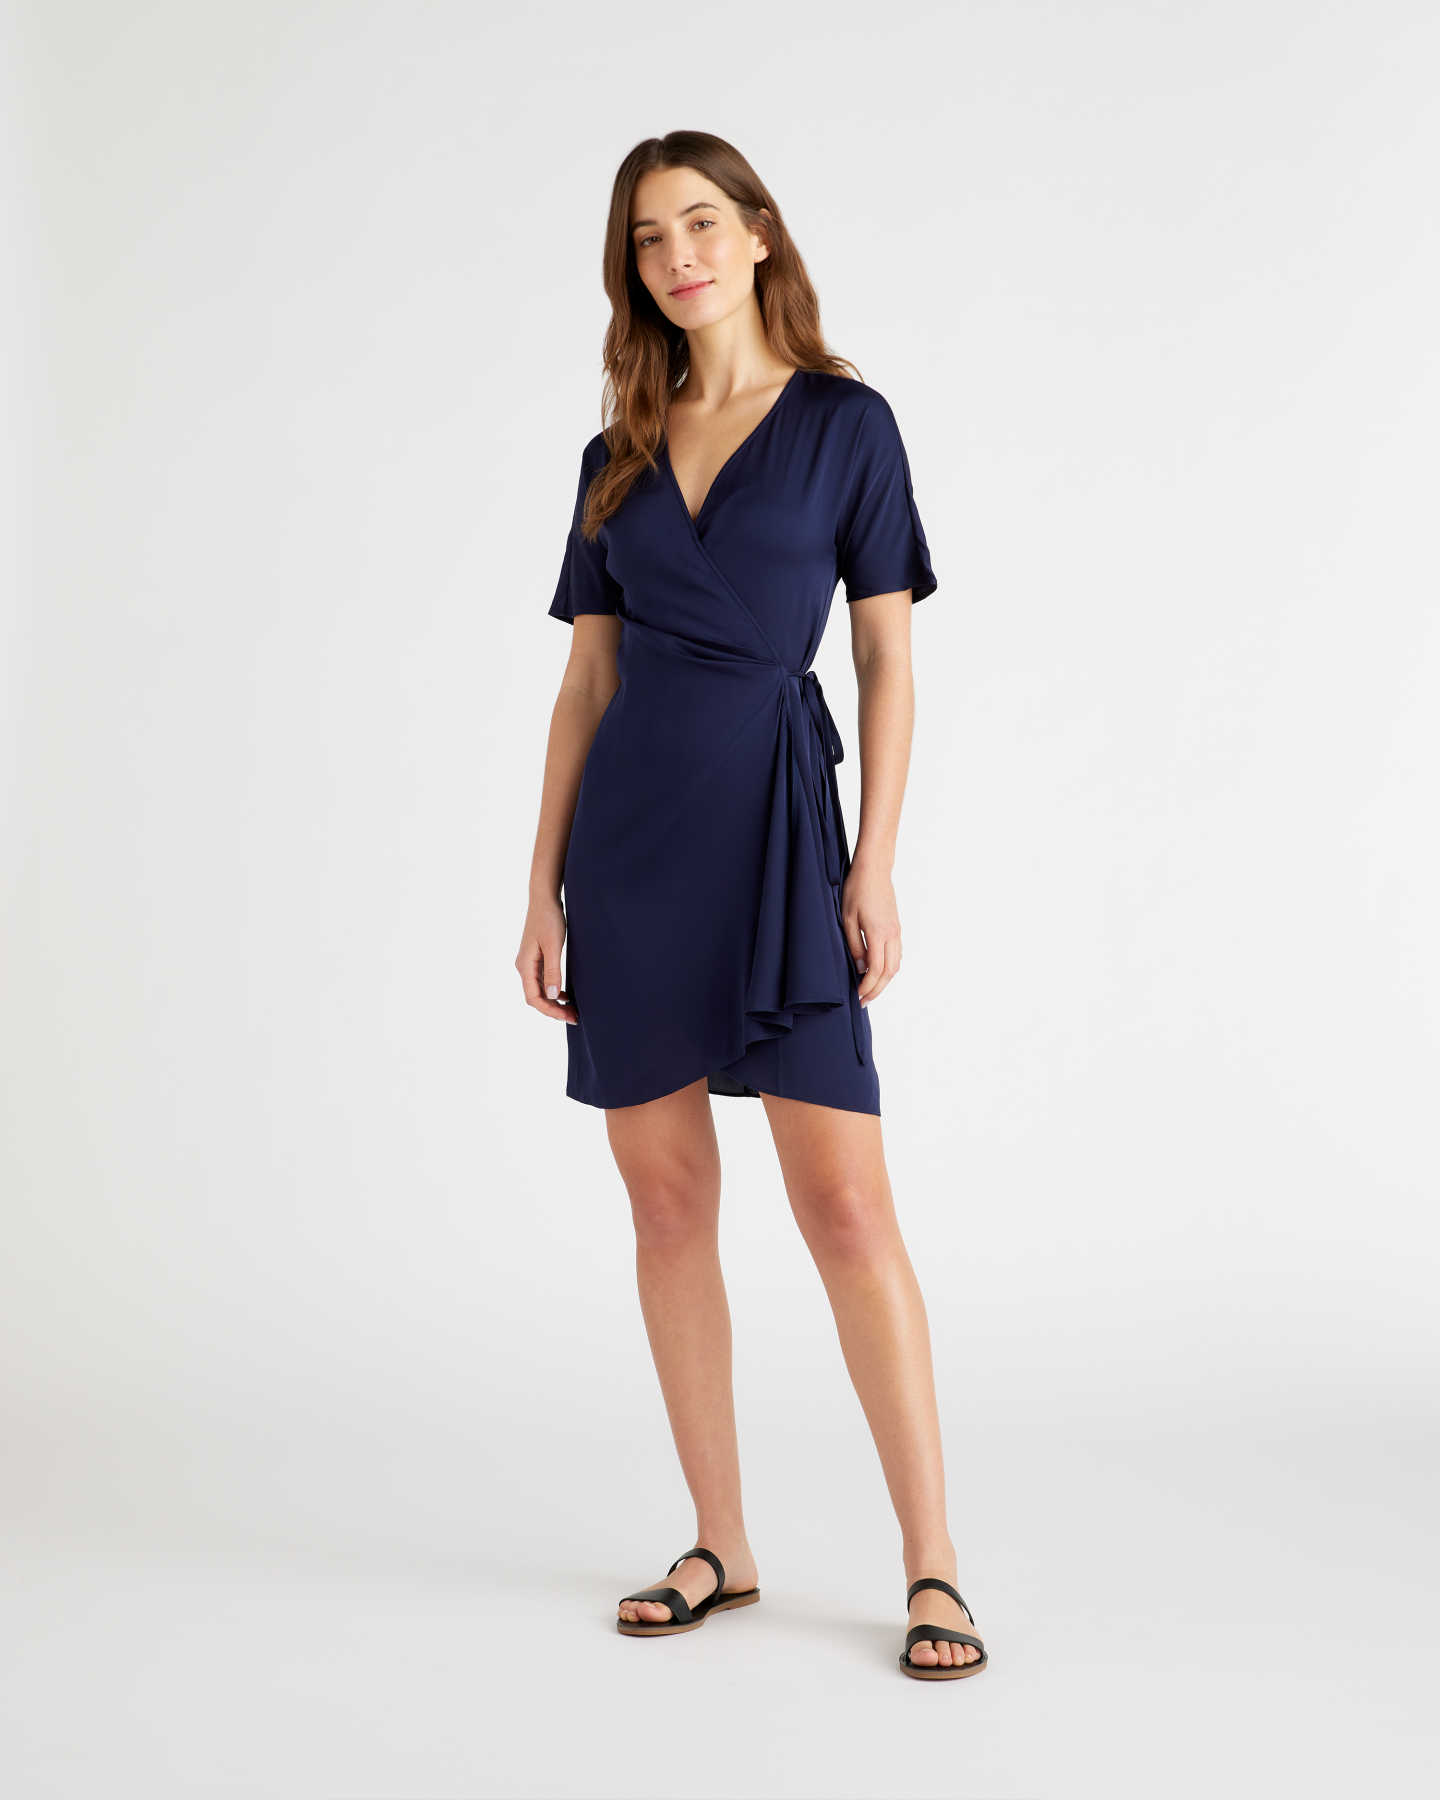 Washable Stretch Silk Wrap Dress - Navy